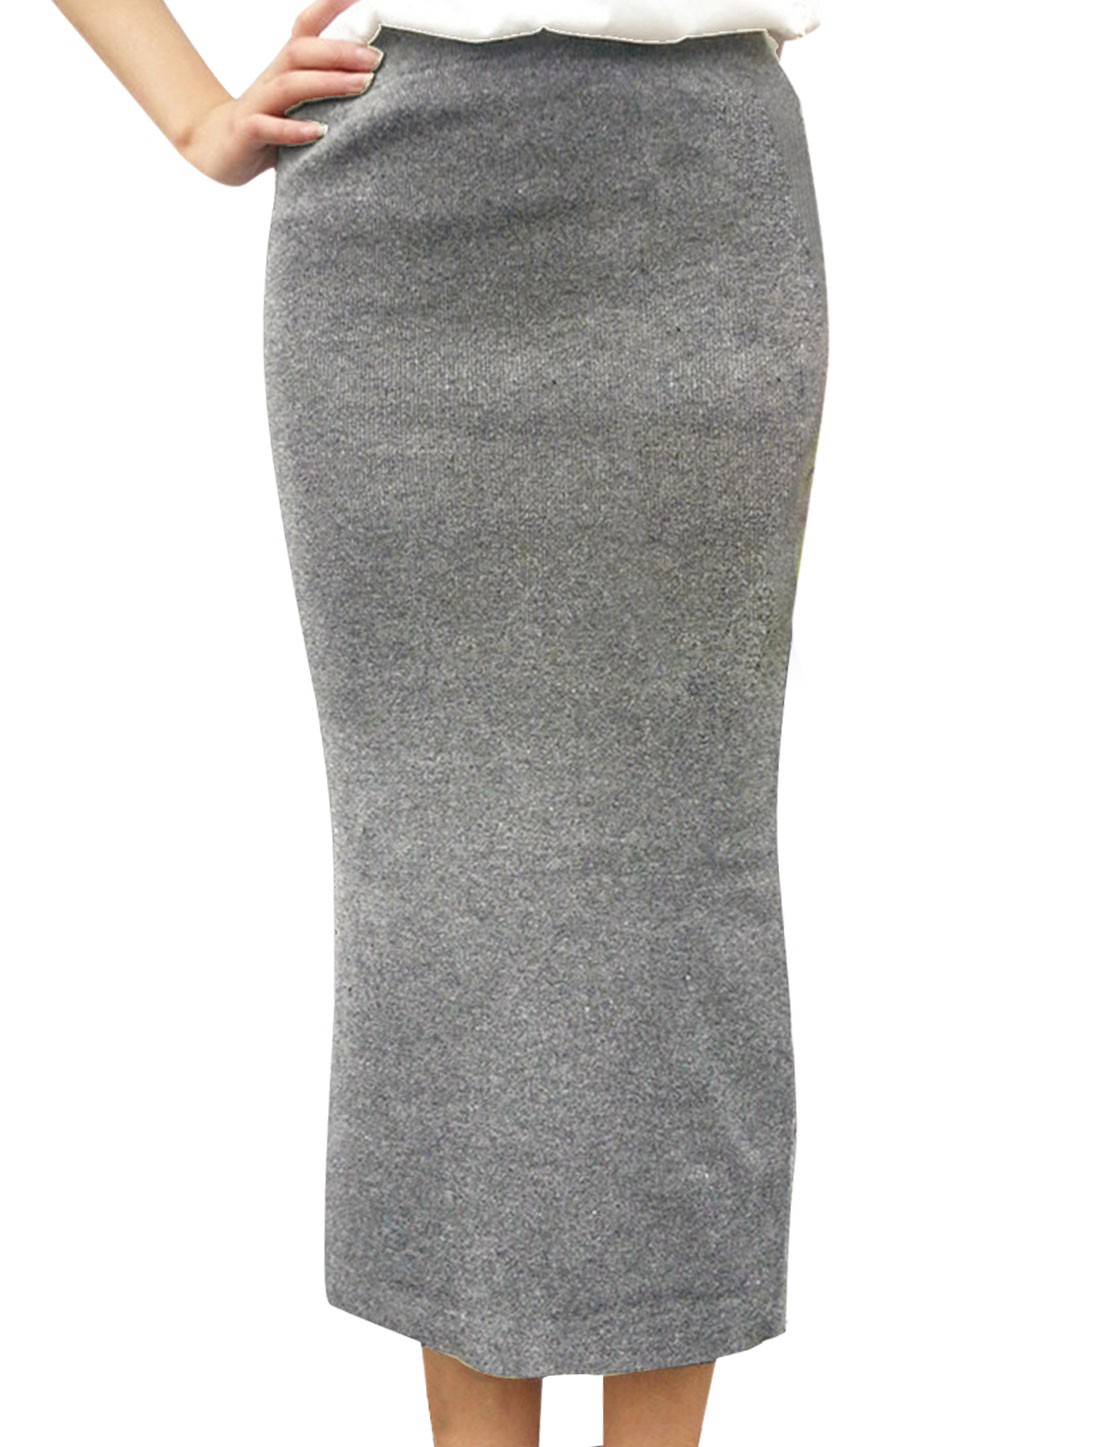 Women's Elastic Back Slit Casual Long Knitted Skirt Light Gray S